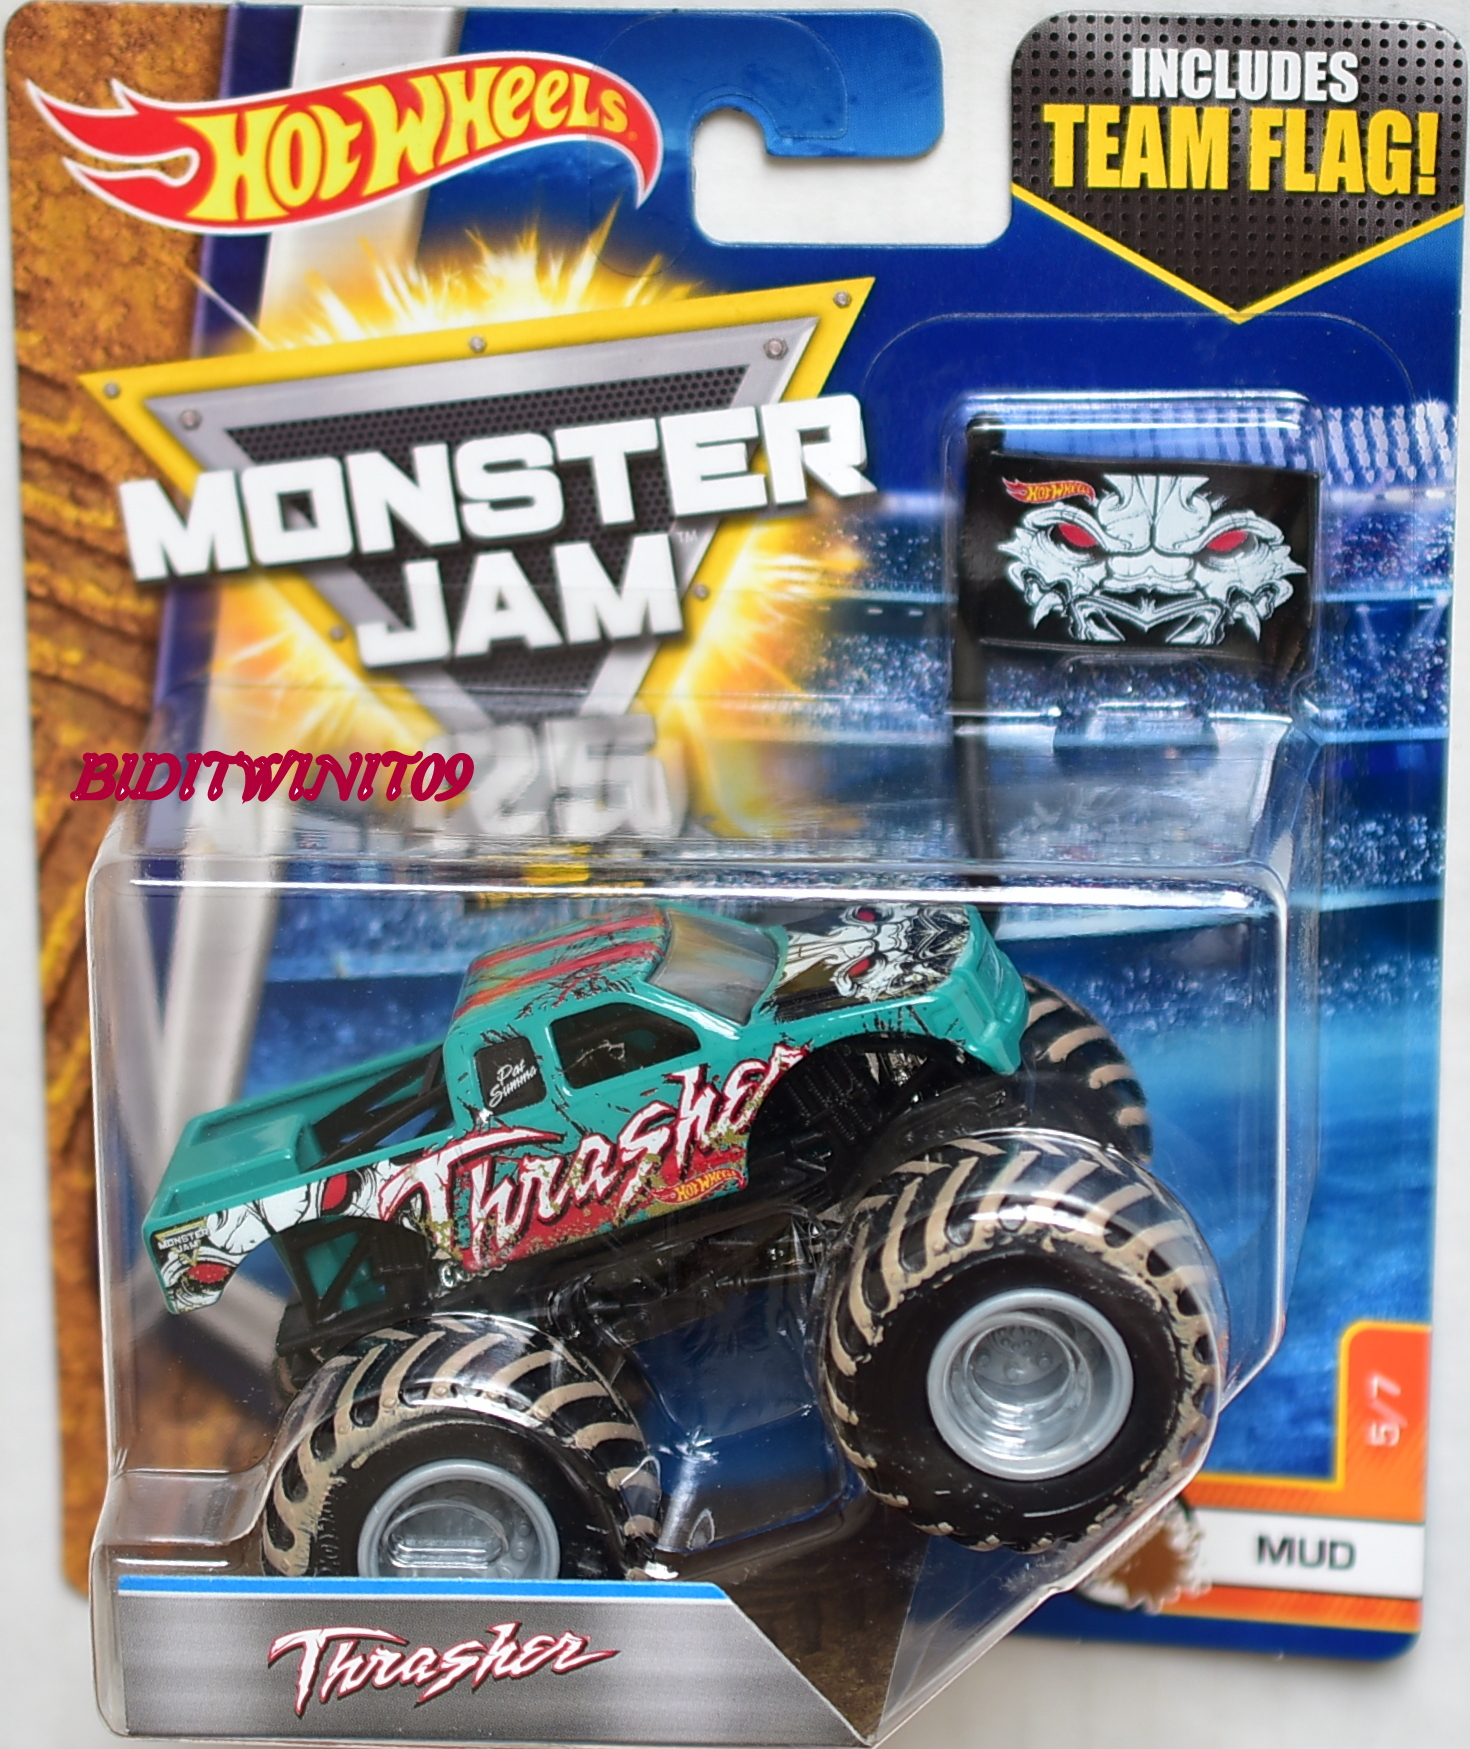 HOT WHEELS 2017 MONSTER JAM INCLUDES TEAM FLAG THRASHER - MUD